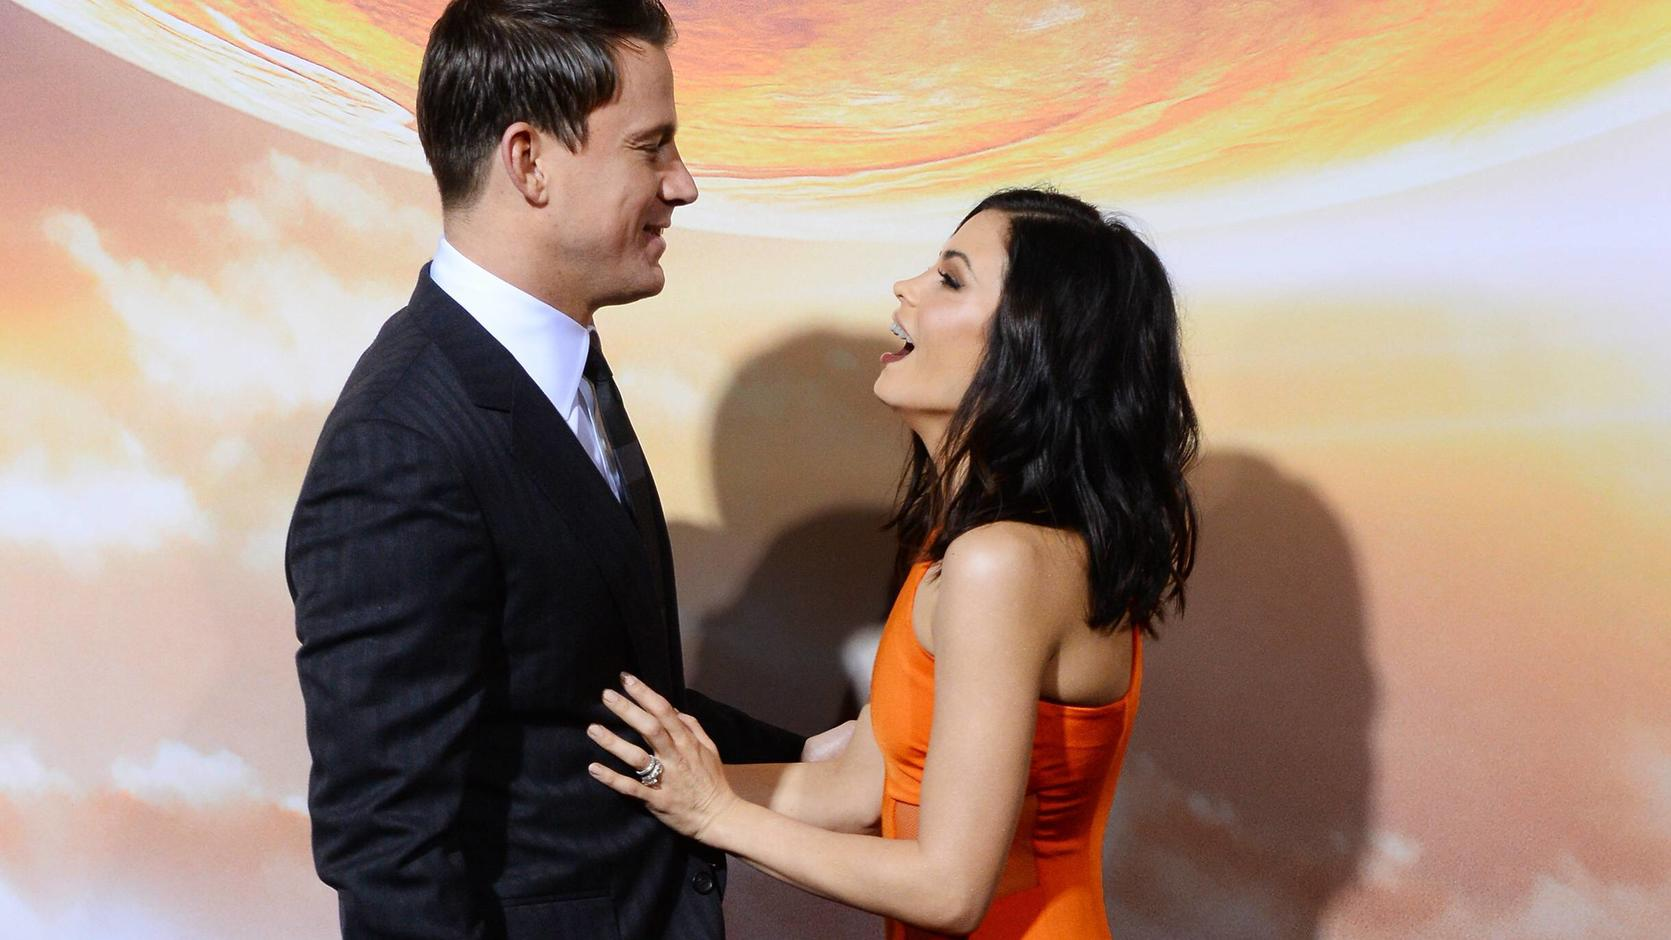 Cast member Channing Tatum and his wife, actress Jenna Dewan Tatum attend the premiere of the sci-fi motion picture Jupiter Ascending at TCL Chinese Theatre in the Hollywood section of Los Angeles on February 2, 2015.  PUBLICATIONxINxGERxSUIxAUTxHUNx